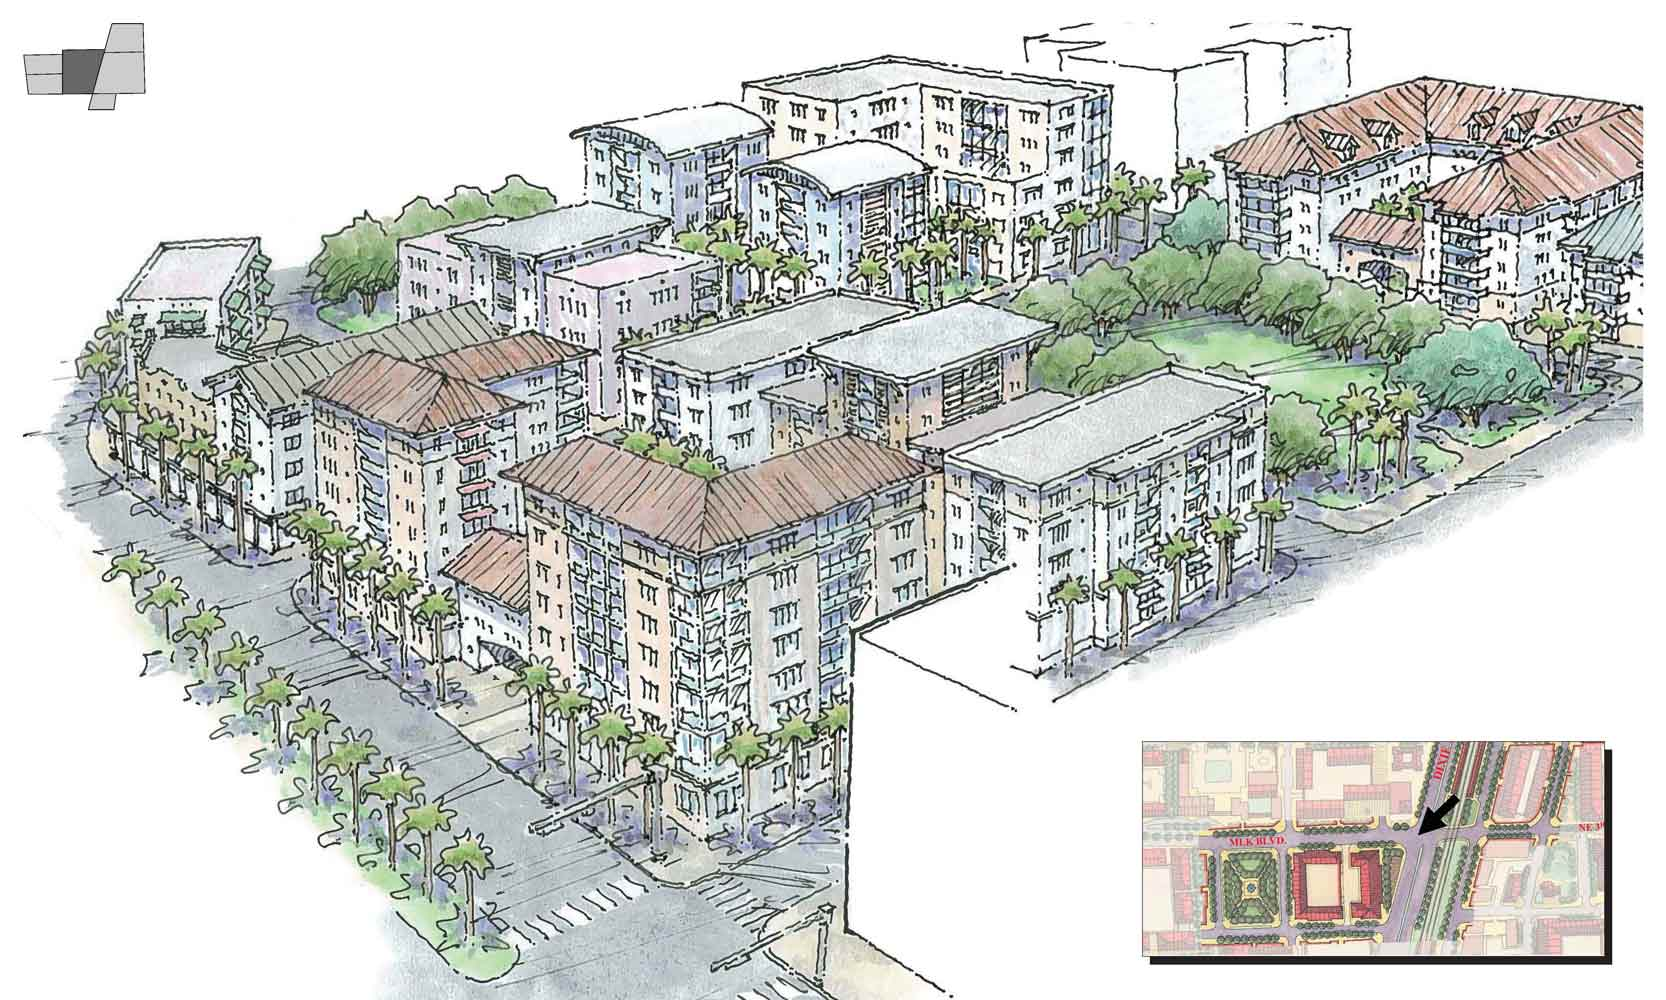 Pompano Beach Master Plan Land Use Amendment Zoning Regulations Rma